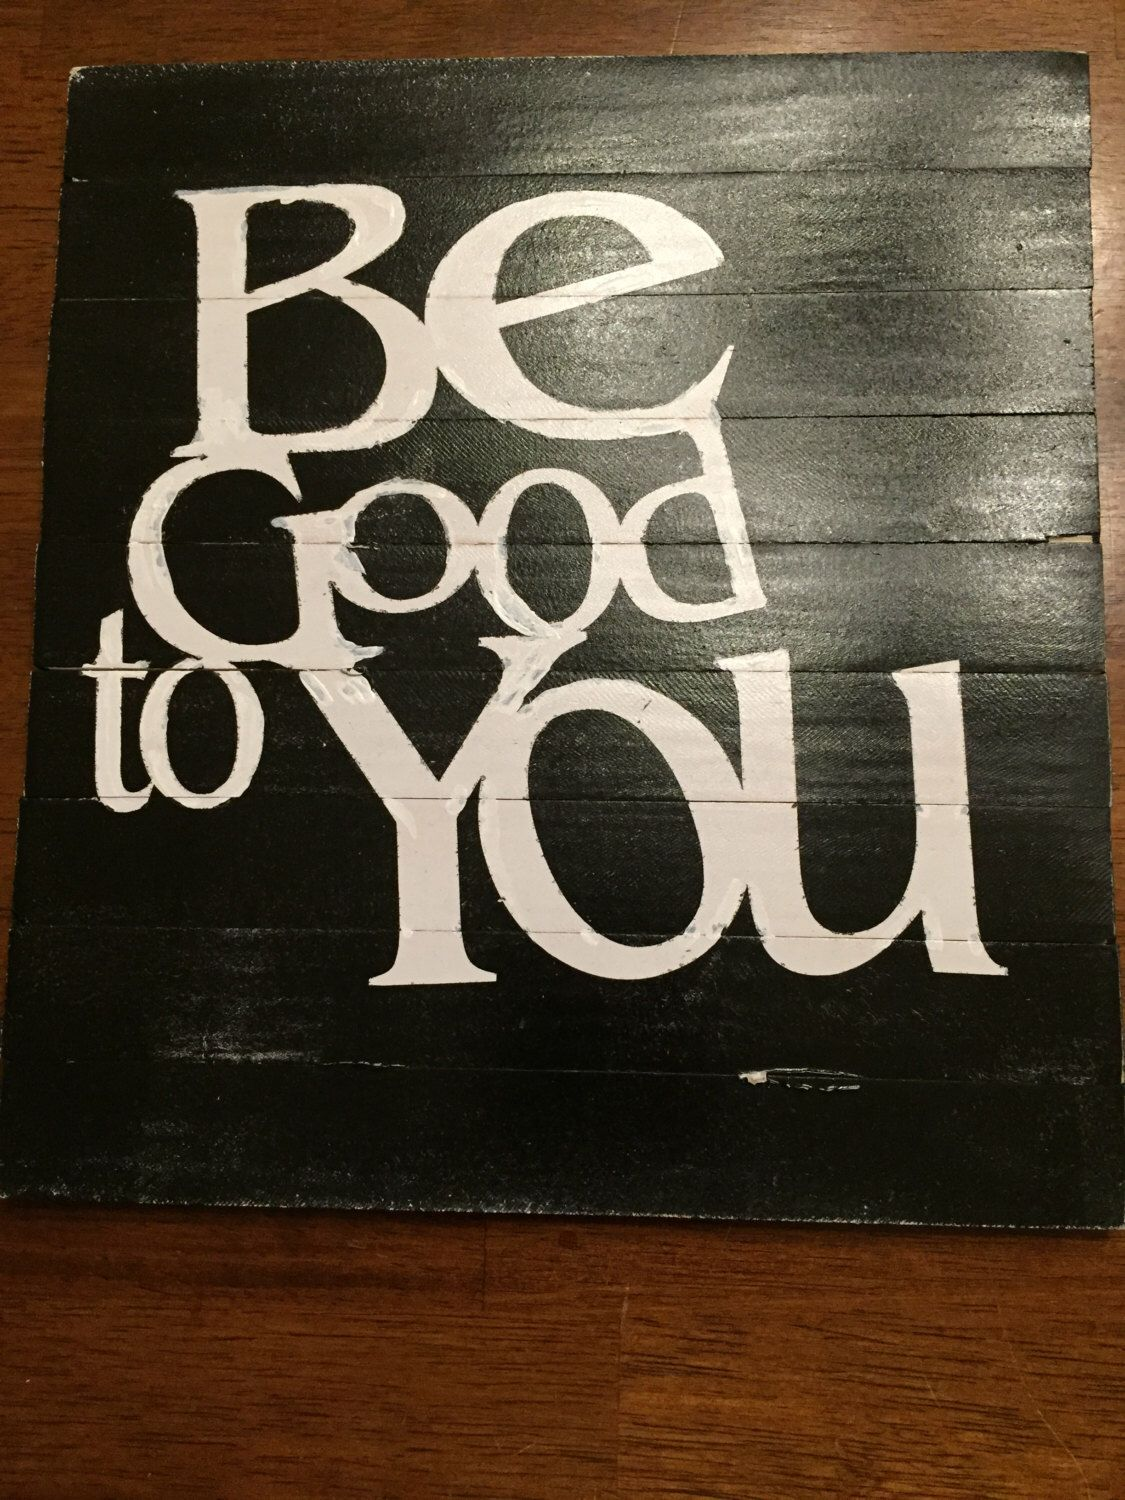 """Hand-painted wooden sign.            Reads """"Be good to you"""". by SouthernGirlUpNorth on Etsy https://www.etsy.com/listing/223327808/hand-painted-wooden-sign-reads-be-good"""